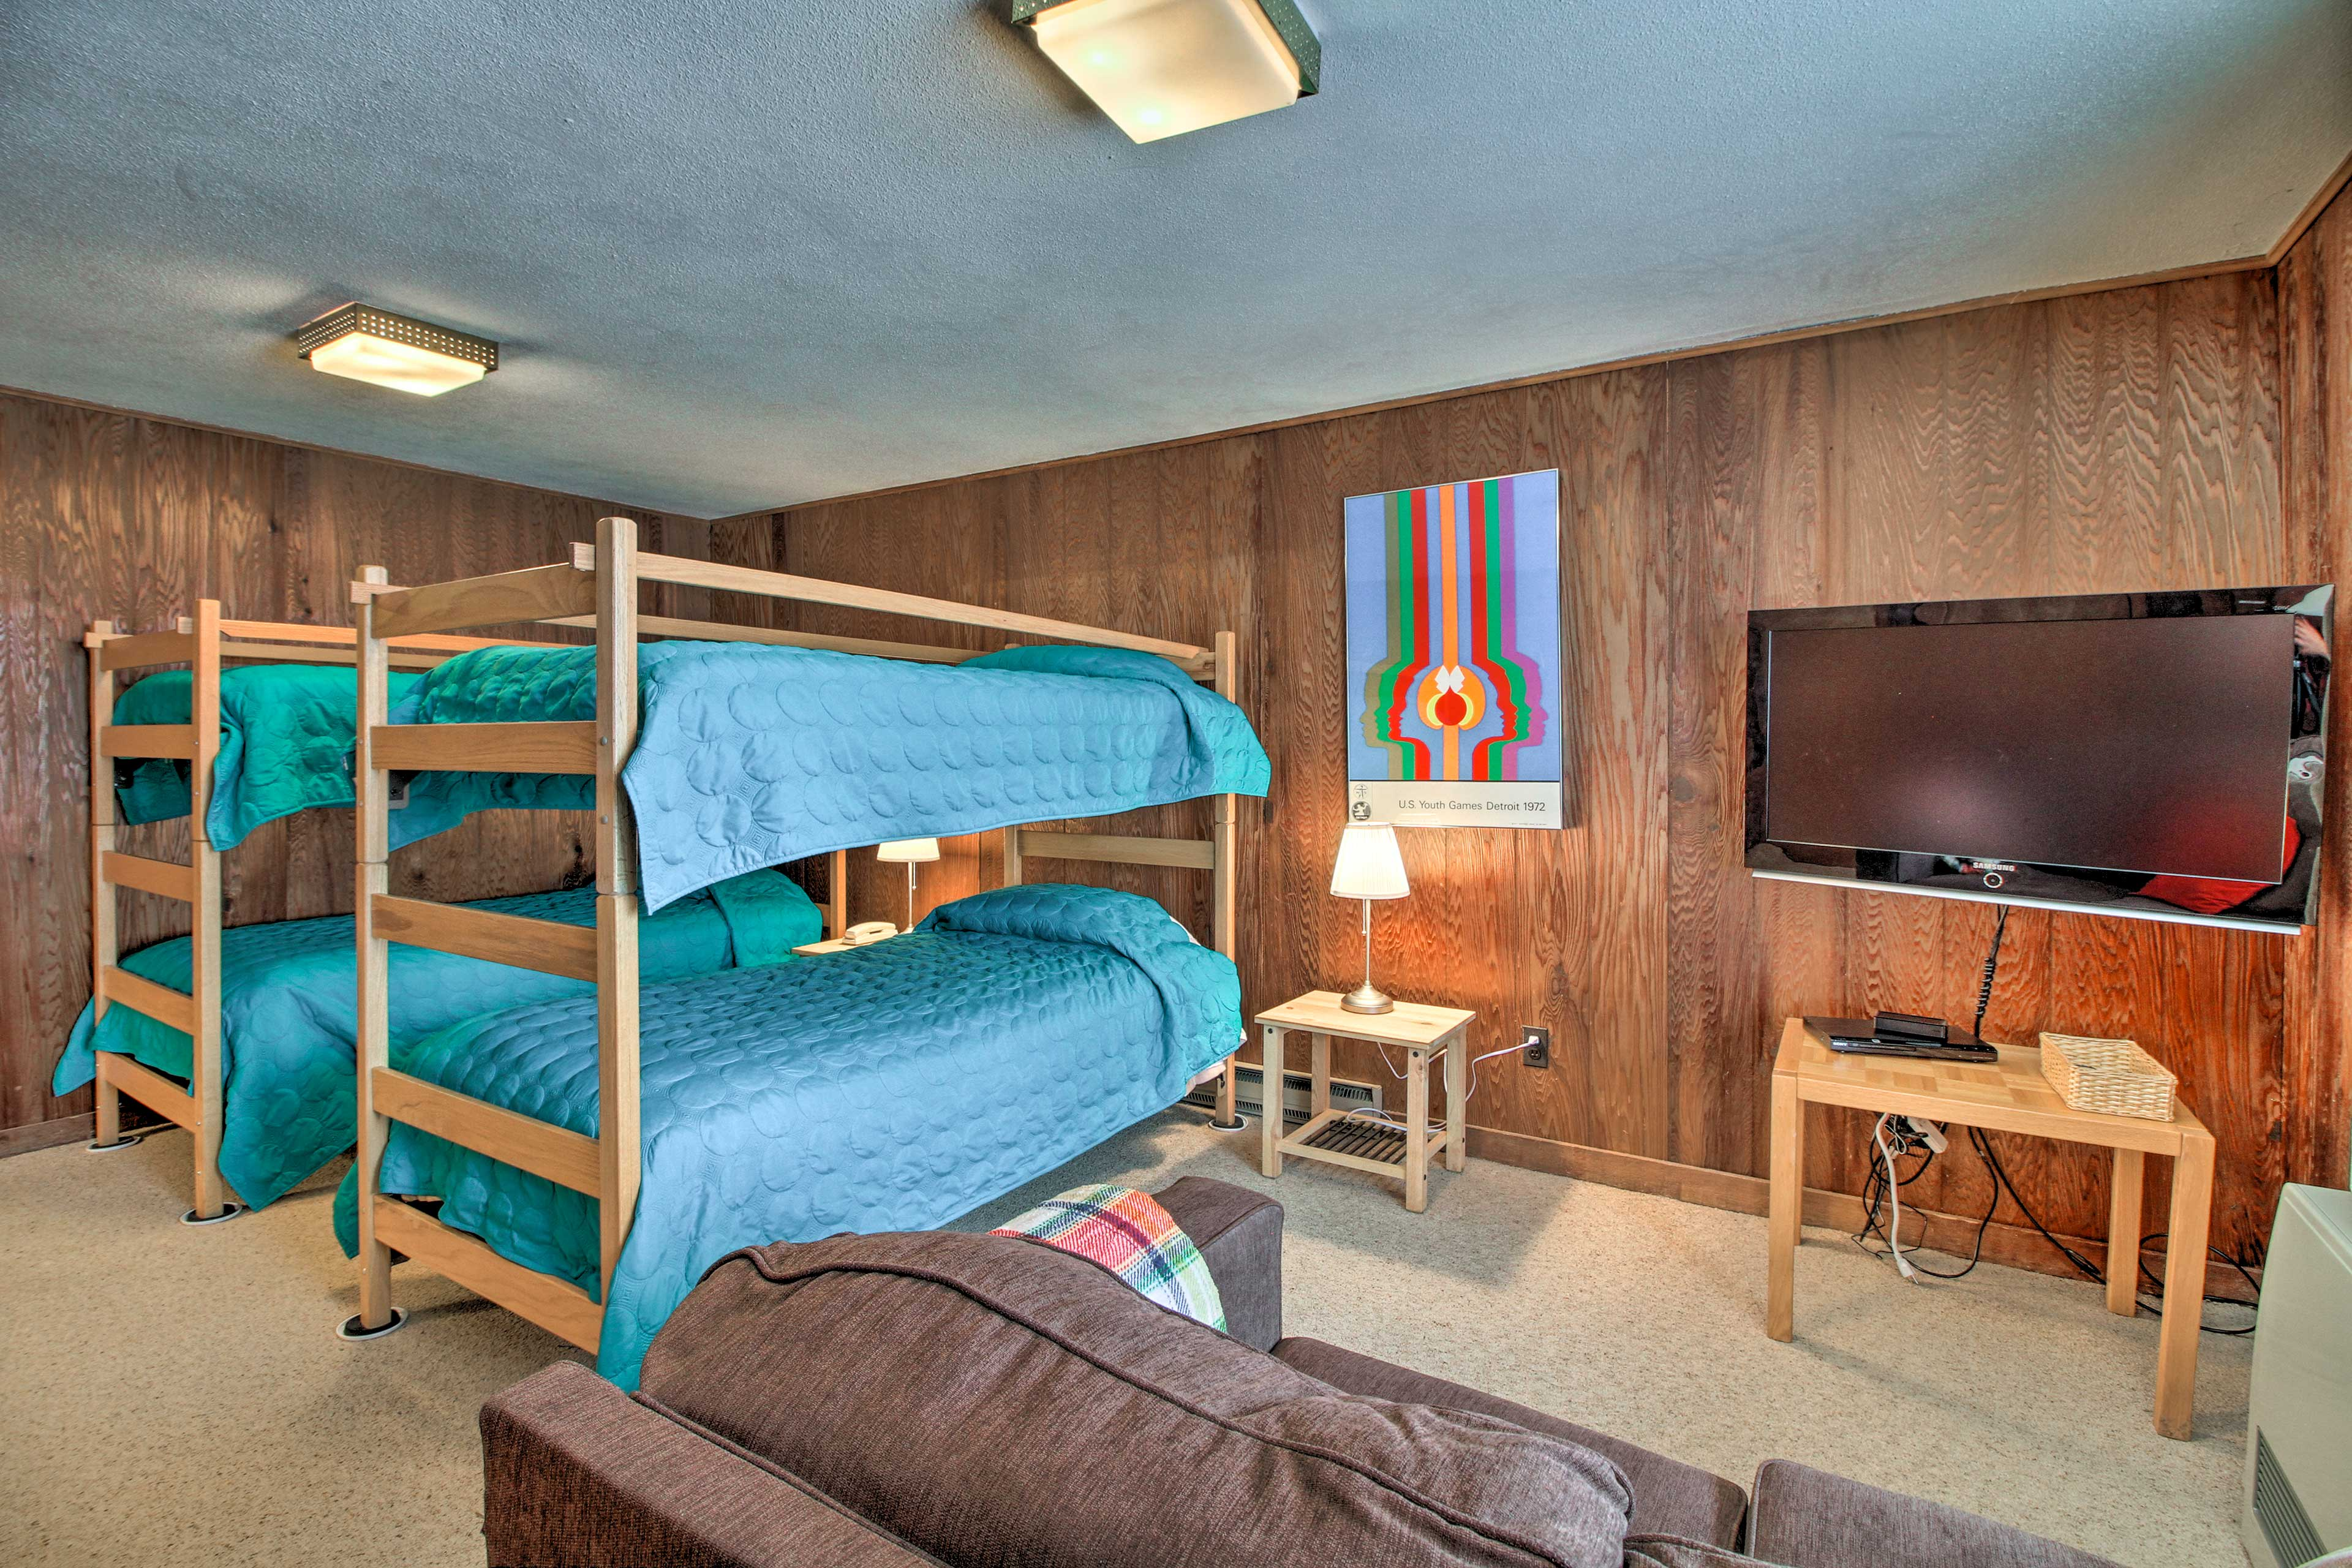 This room has a set of twin-over-twin bunk beds and a TV.